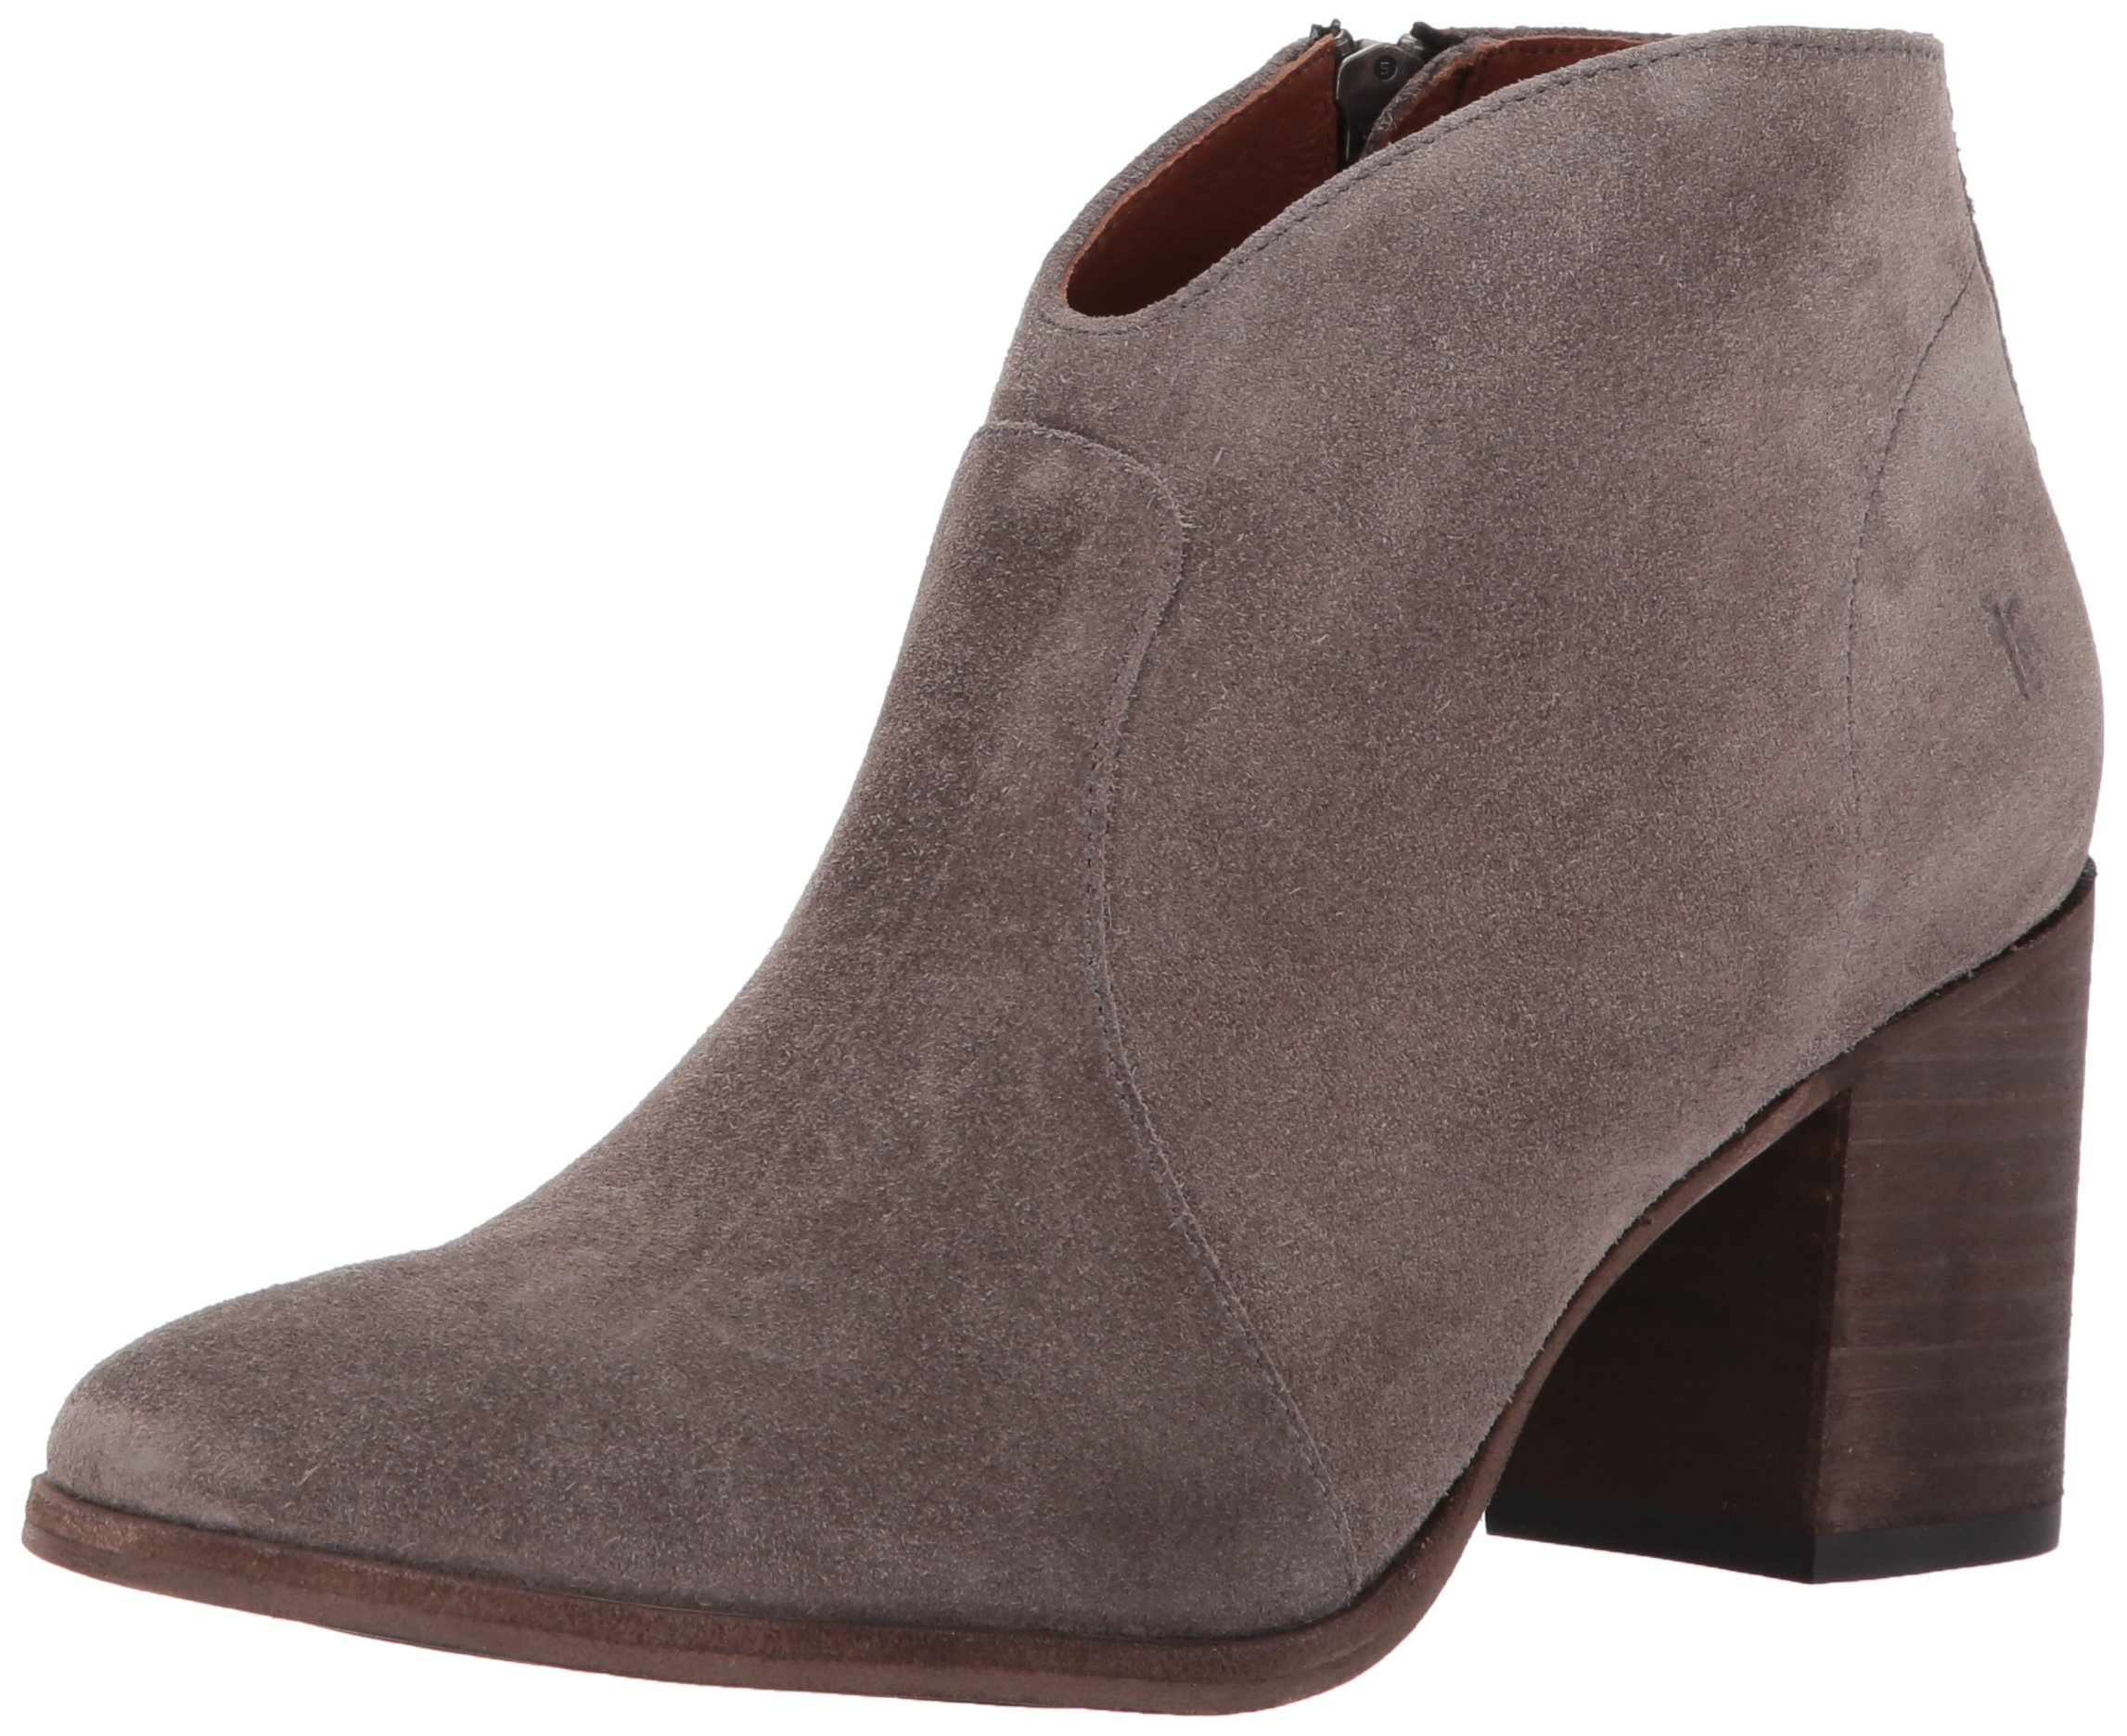 FRYE Women's Nora Short Inside Zip Boot, Elephant Soft Oiled Suede, 10 M US